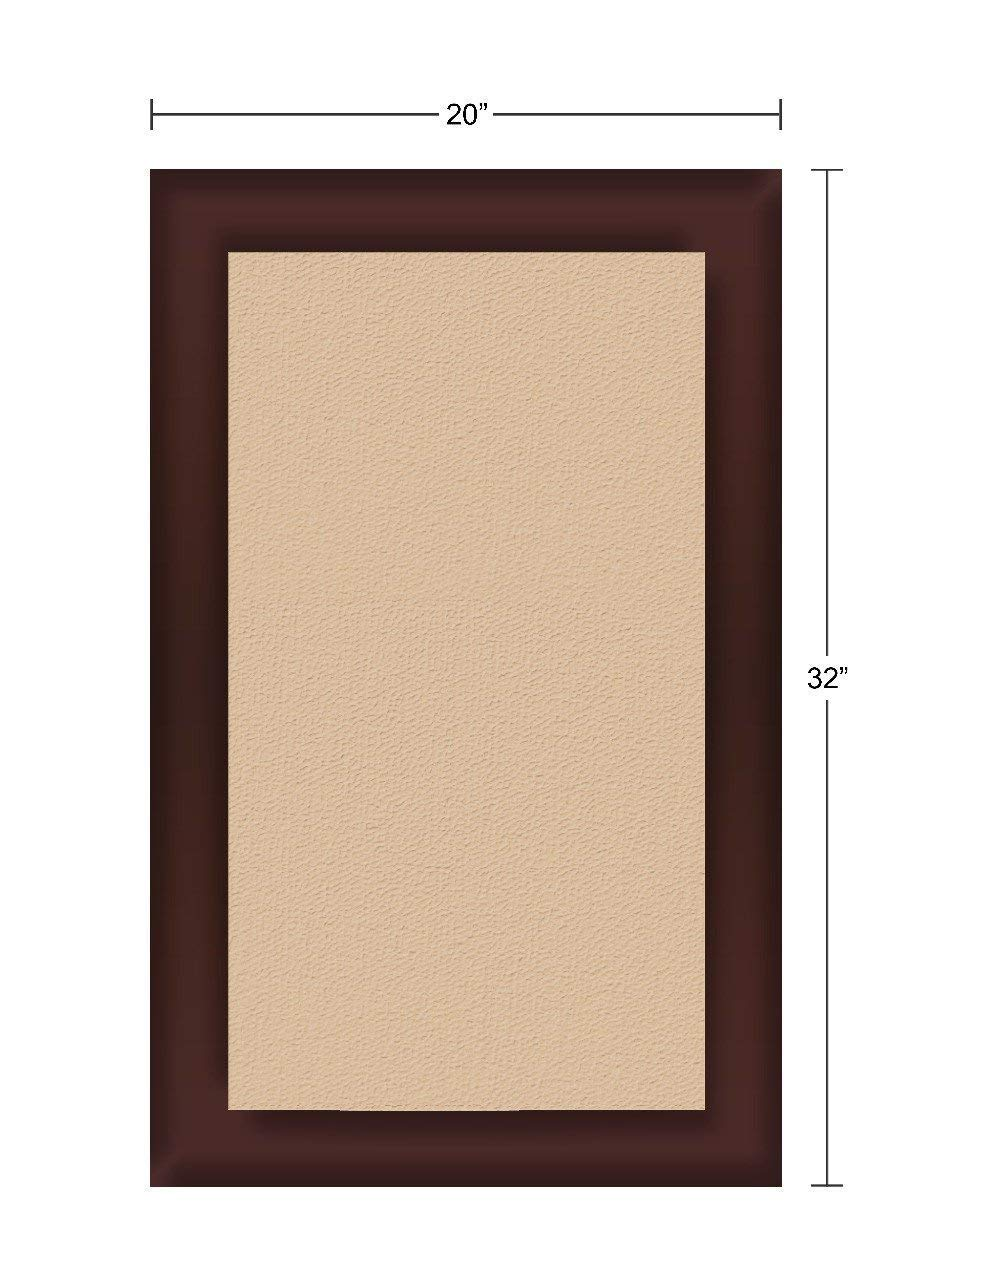 Magnificent Memory Foam Kitchen Mat, 20 X 32 inch, Bath Mat, Bedroom Mat, Non-slip Mat - Soft and stylish - Brown